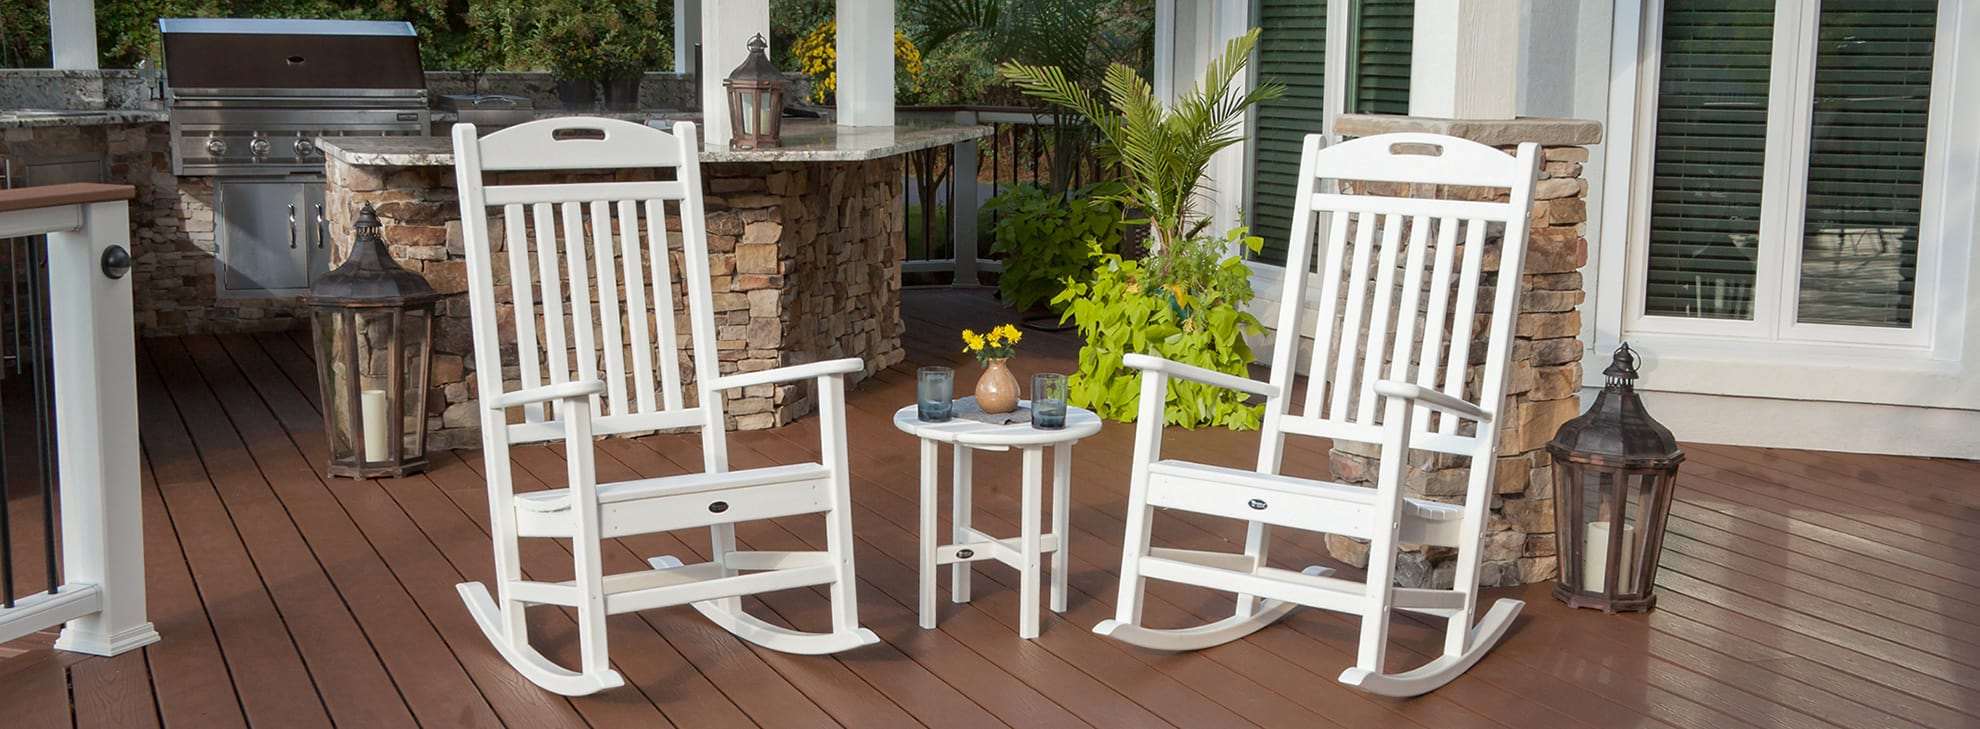 Patio Furniture Table And Chairs Outdoor Composite Furniture By Type Trex Outdoor Furniture